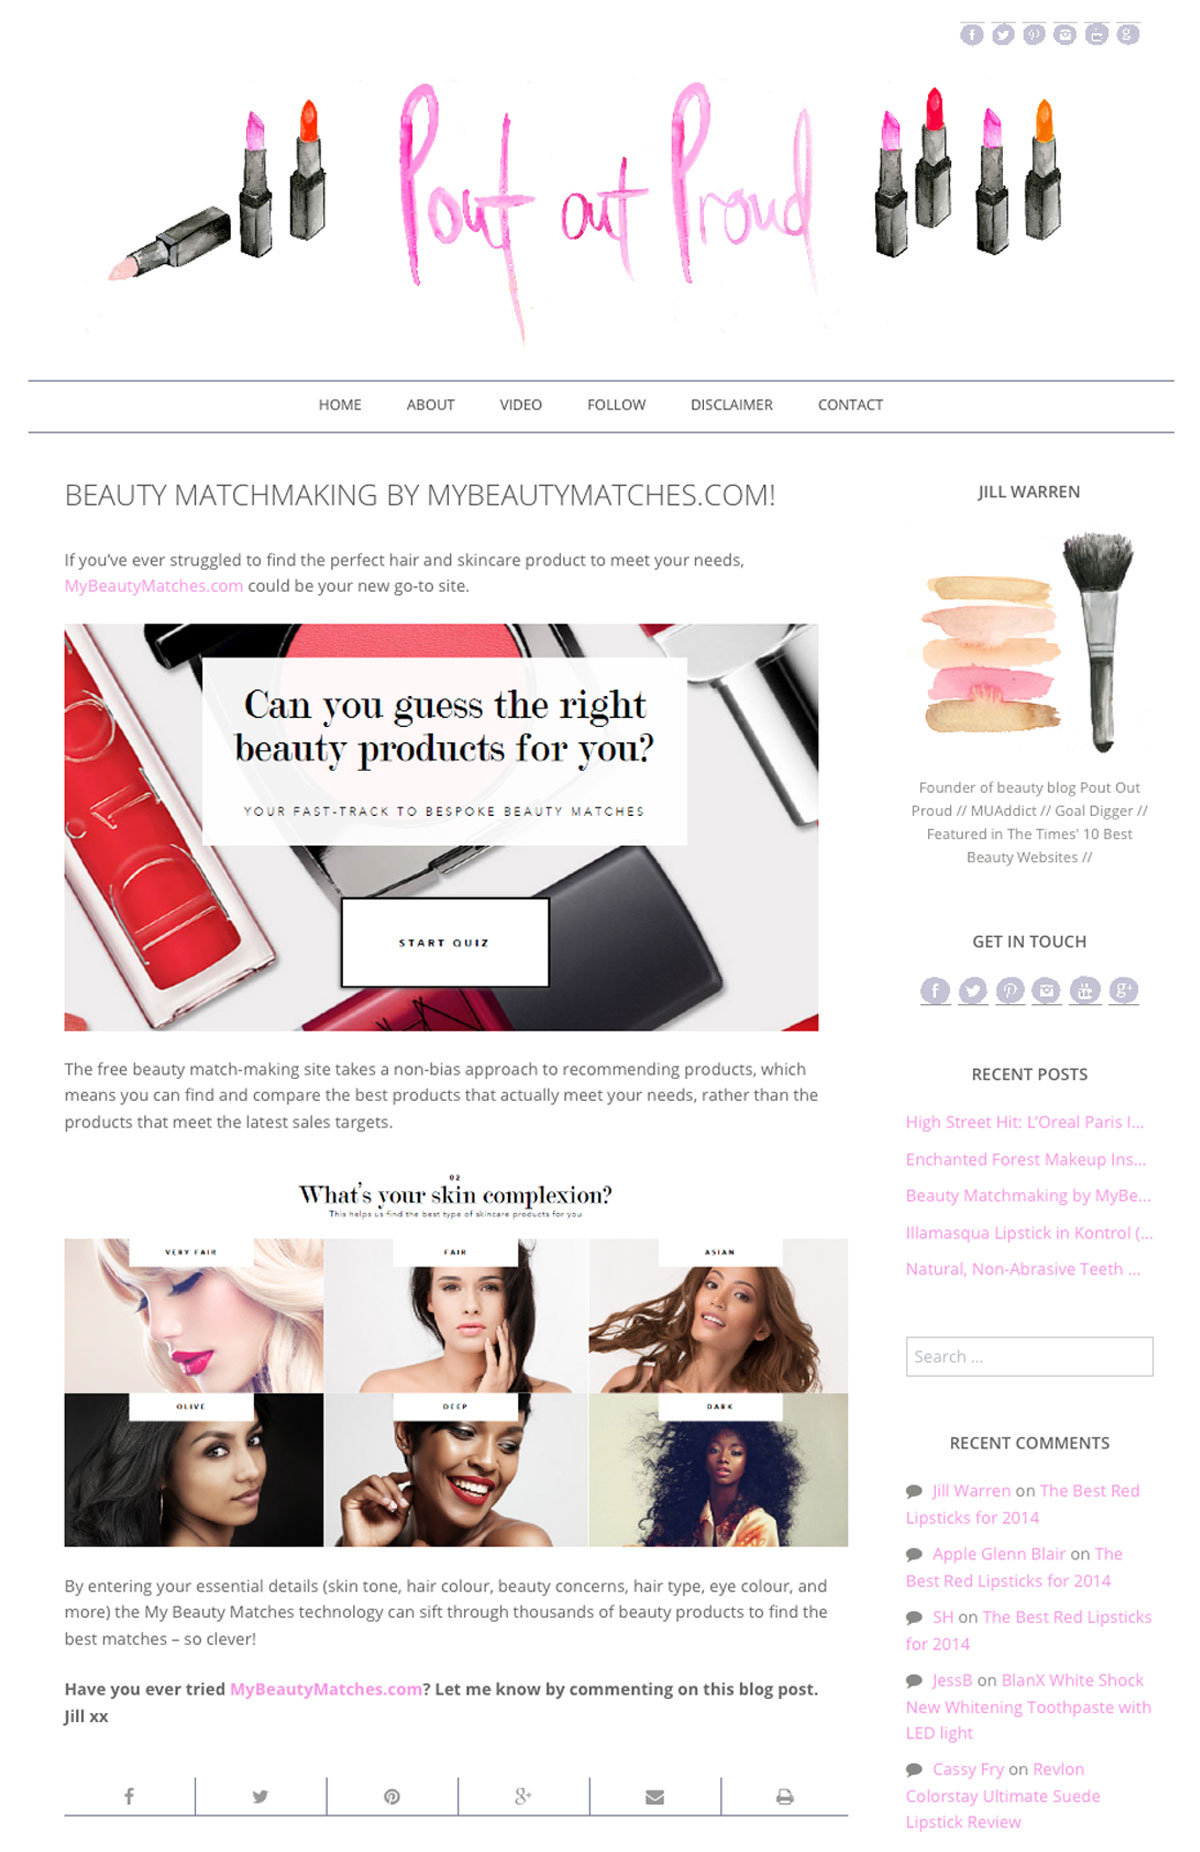 Beauty Matchmaking by MyBeautyMatches.com Clipping